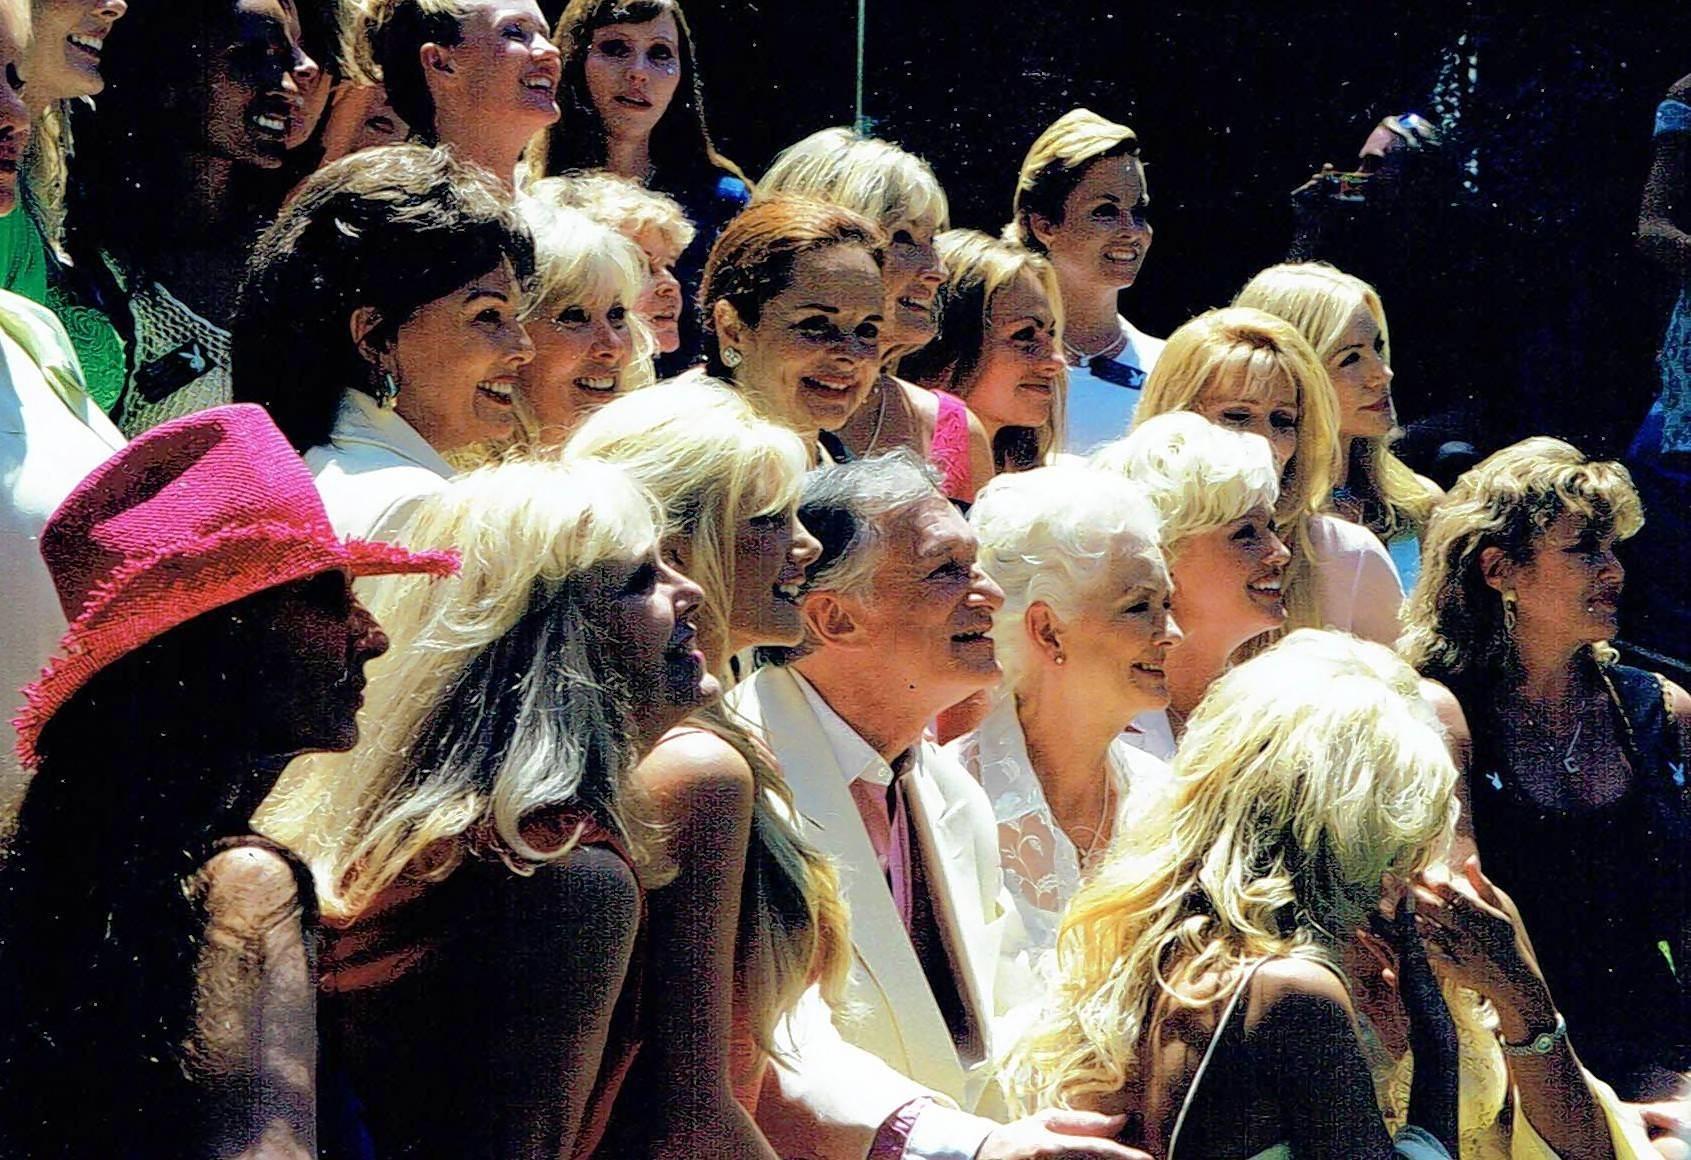 The late Hugh Hefner poses with 300 Playmates for Playboy magazine's 45th anniversary in this 1999 photo by James Bond novelist and Buffalo Grove writer Raymond Benson.